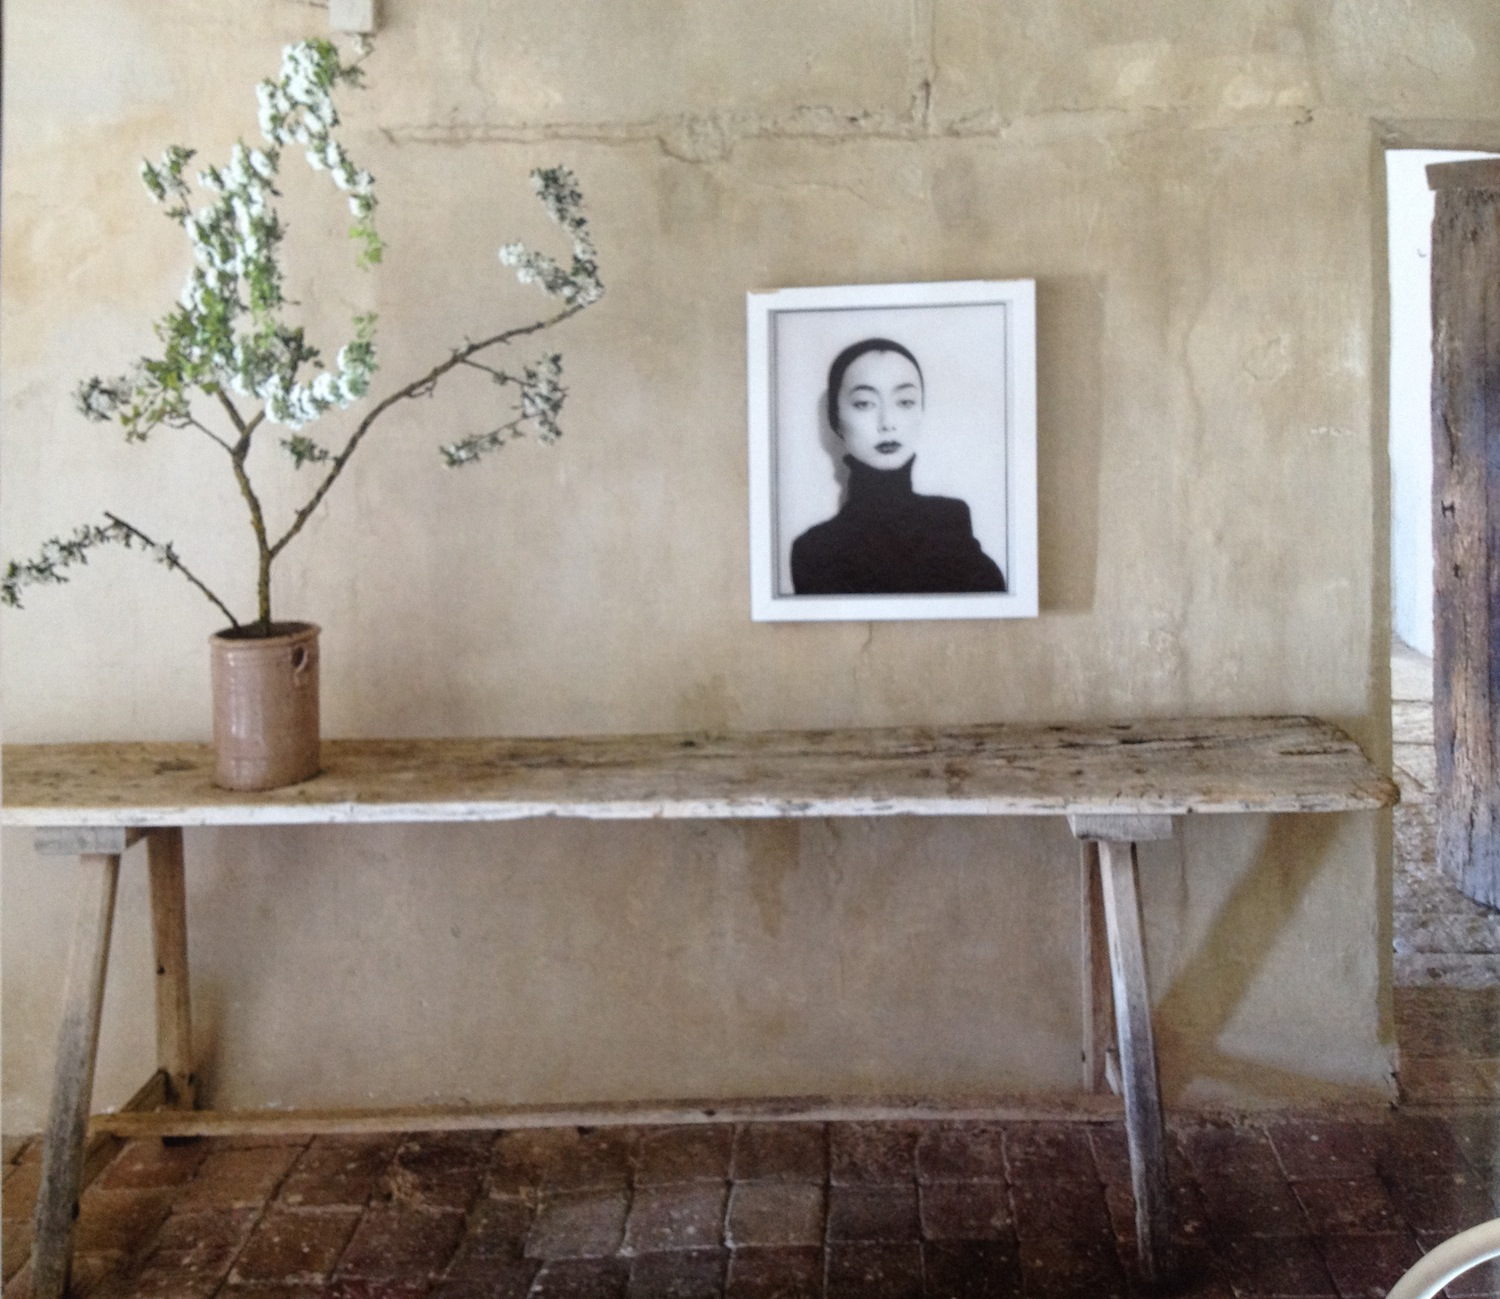 12 Ideas To Have The Best Rustic Gallery Wall: Auction Decorating: Rustic Rules 'at Auction